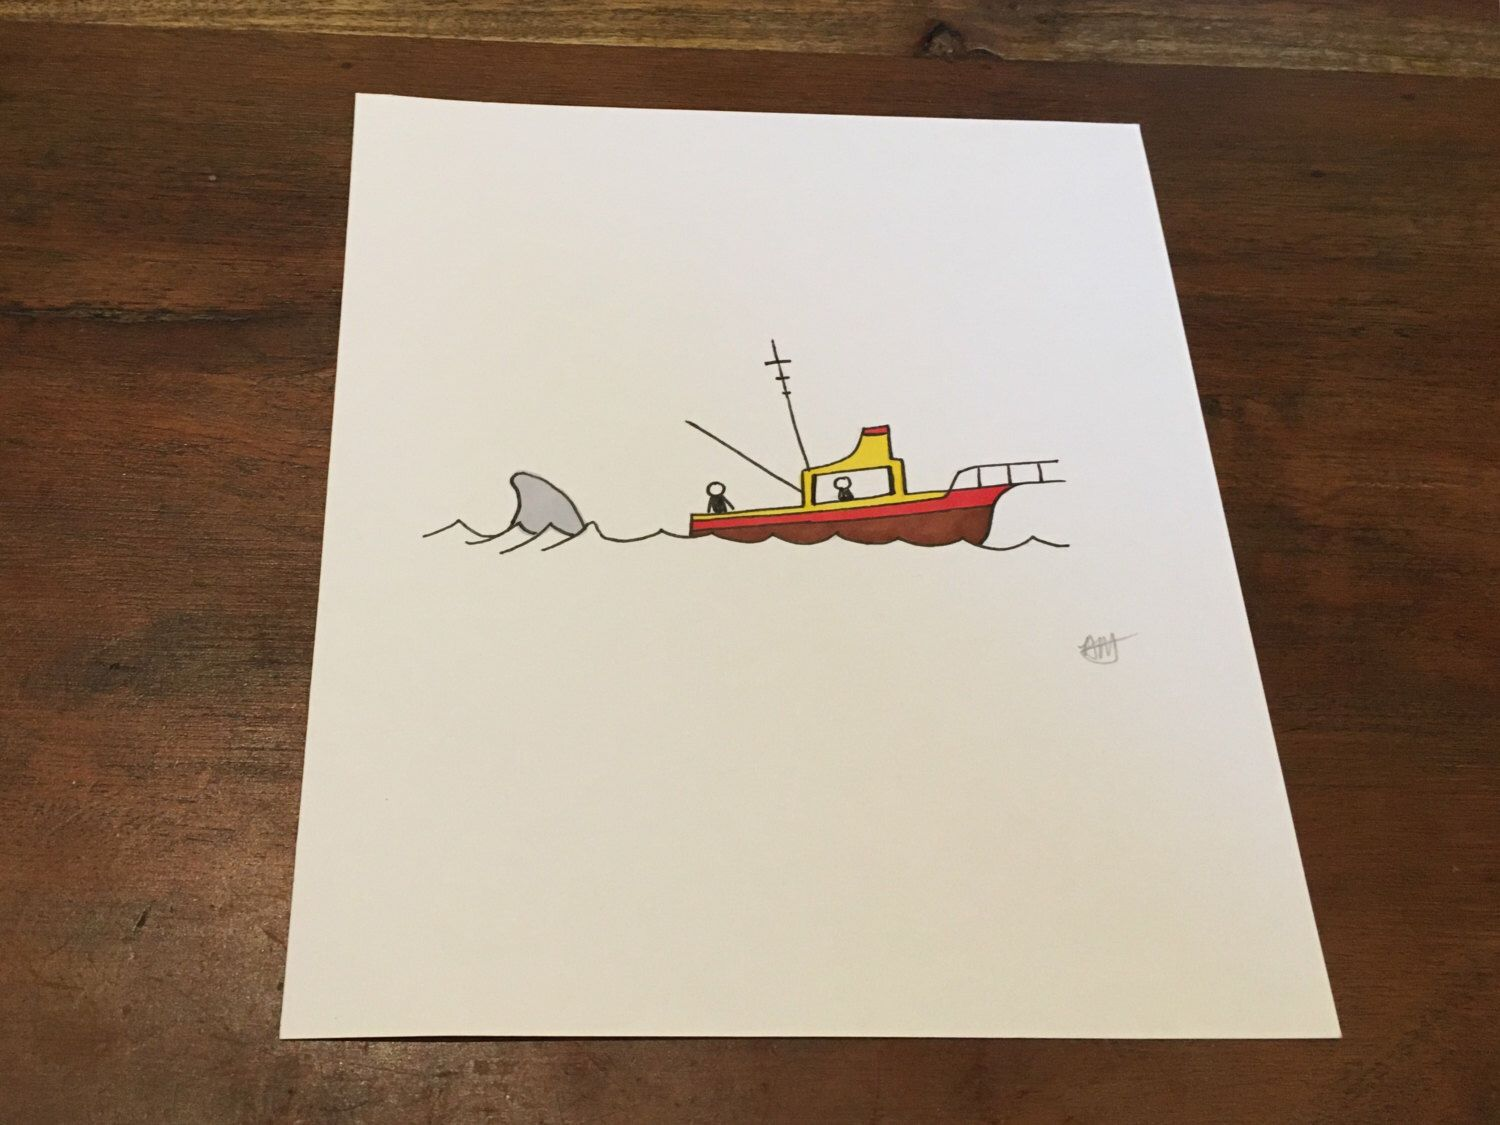 Shark Boat - Handmade Original Artwork by Adele Mary - Inspired by the Movie Jaws- Ink Drawing by AdeleMaryArts on Etsy (null)